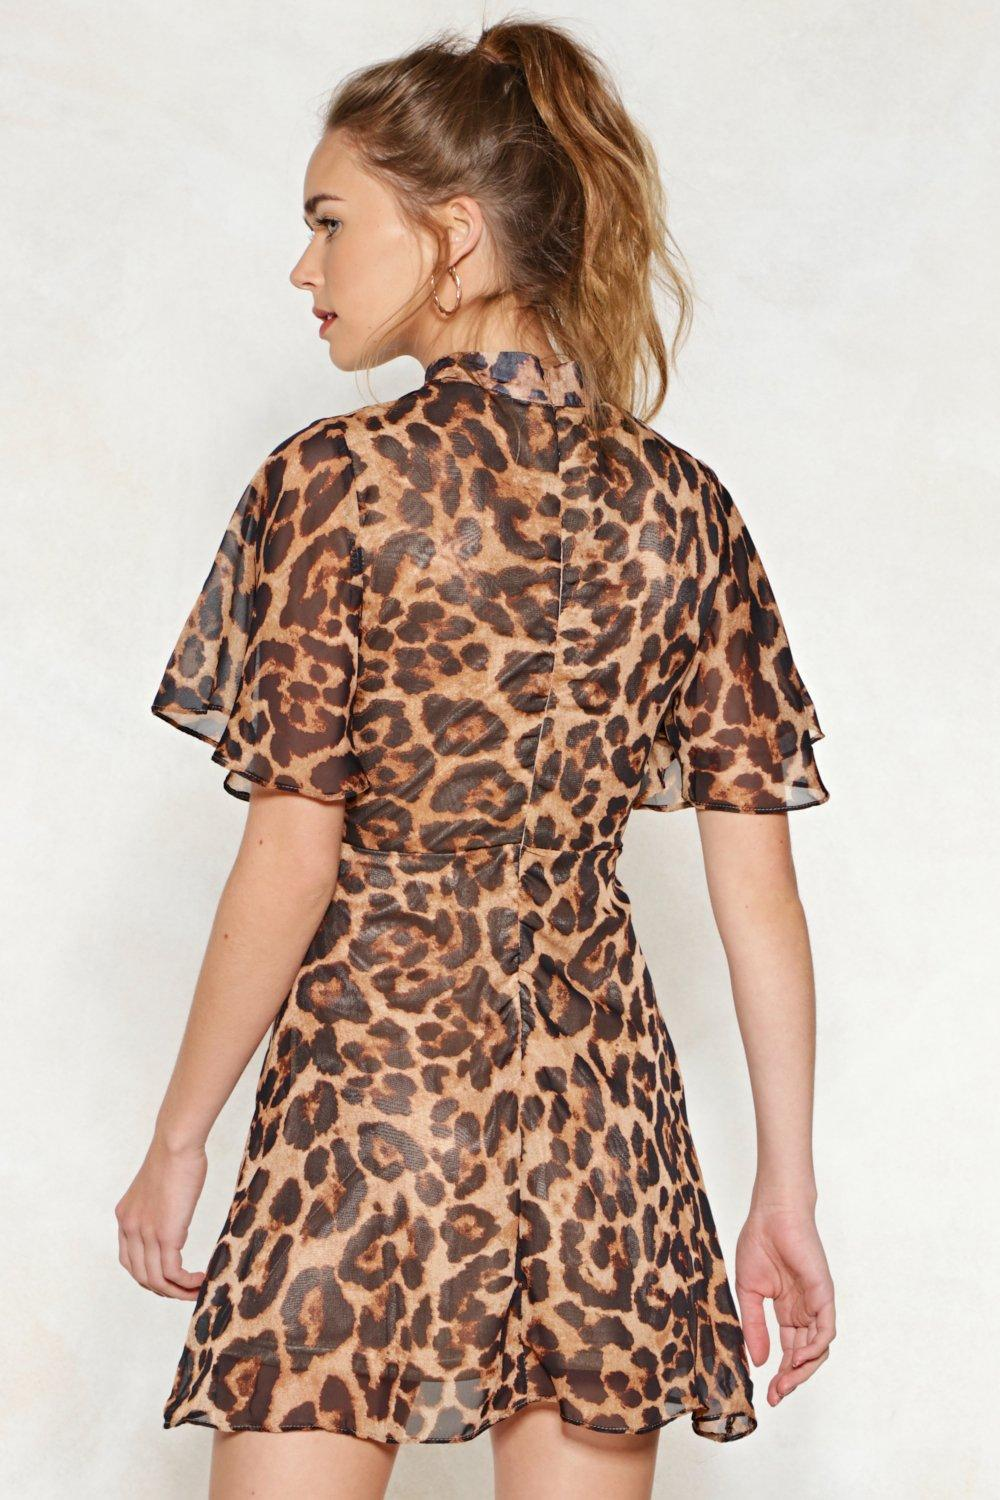 Feline This Leopard Dress | Shop Clothes at Nasty Gal!